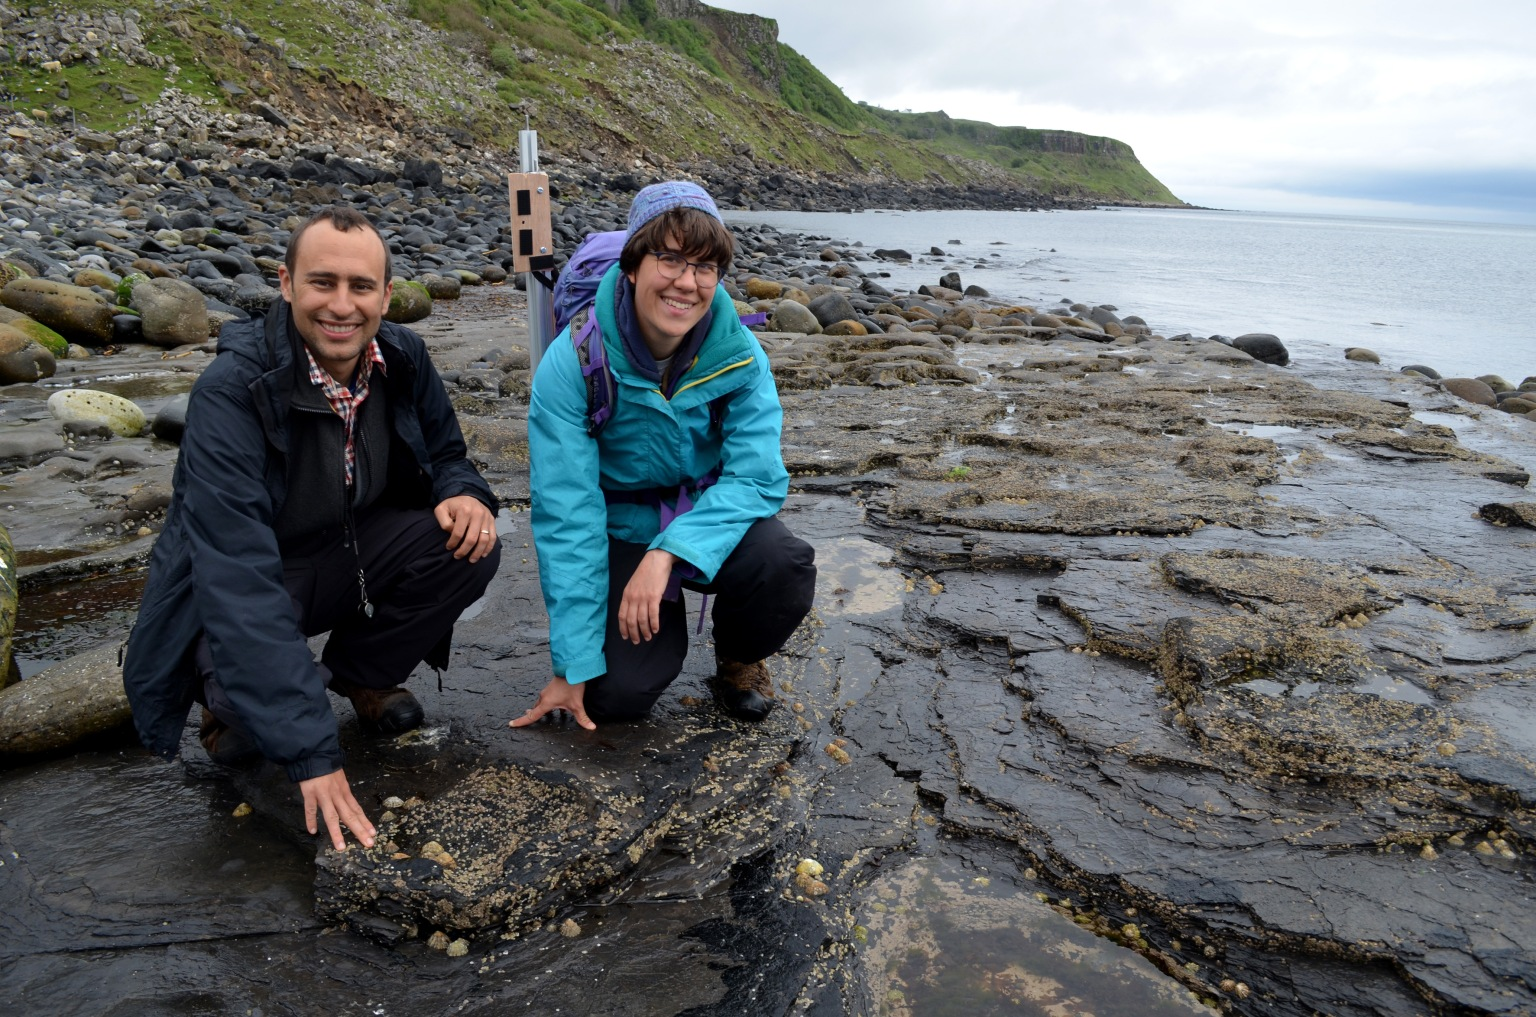 Footprints reveal that stegosaurs once stepped across Scotland